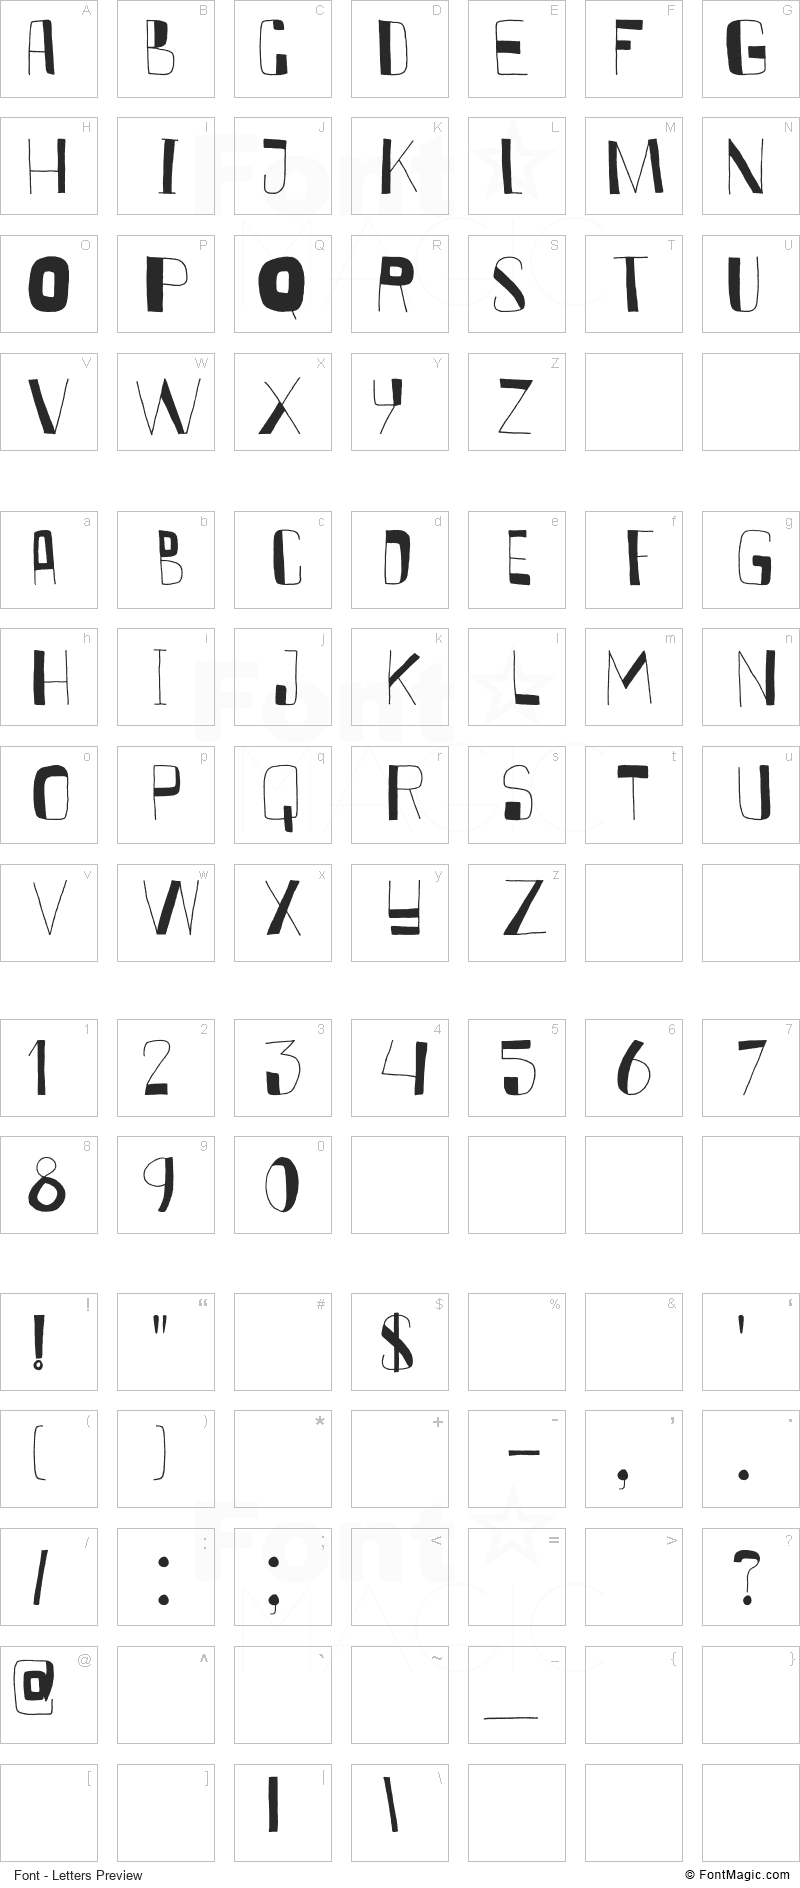 DK Kurkuma Font - All Latters Preview Chart